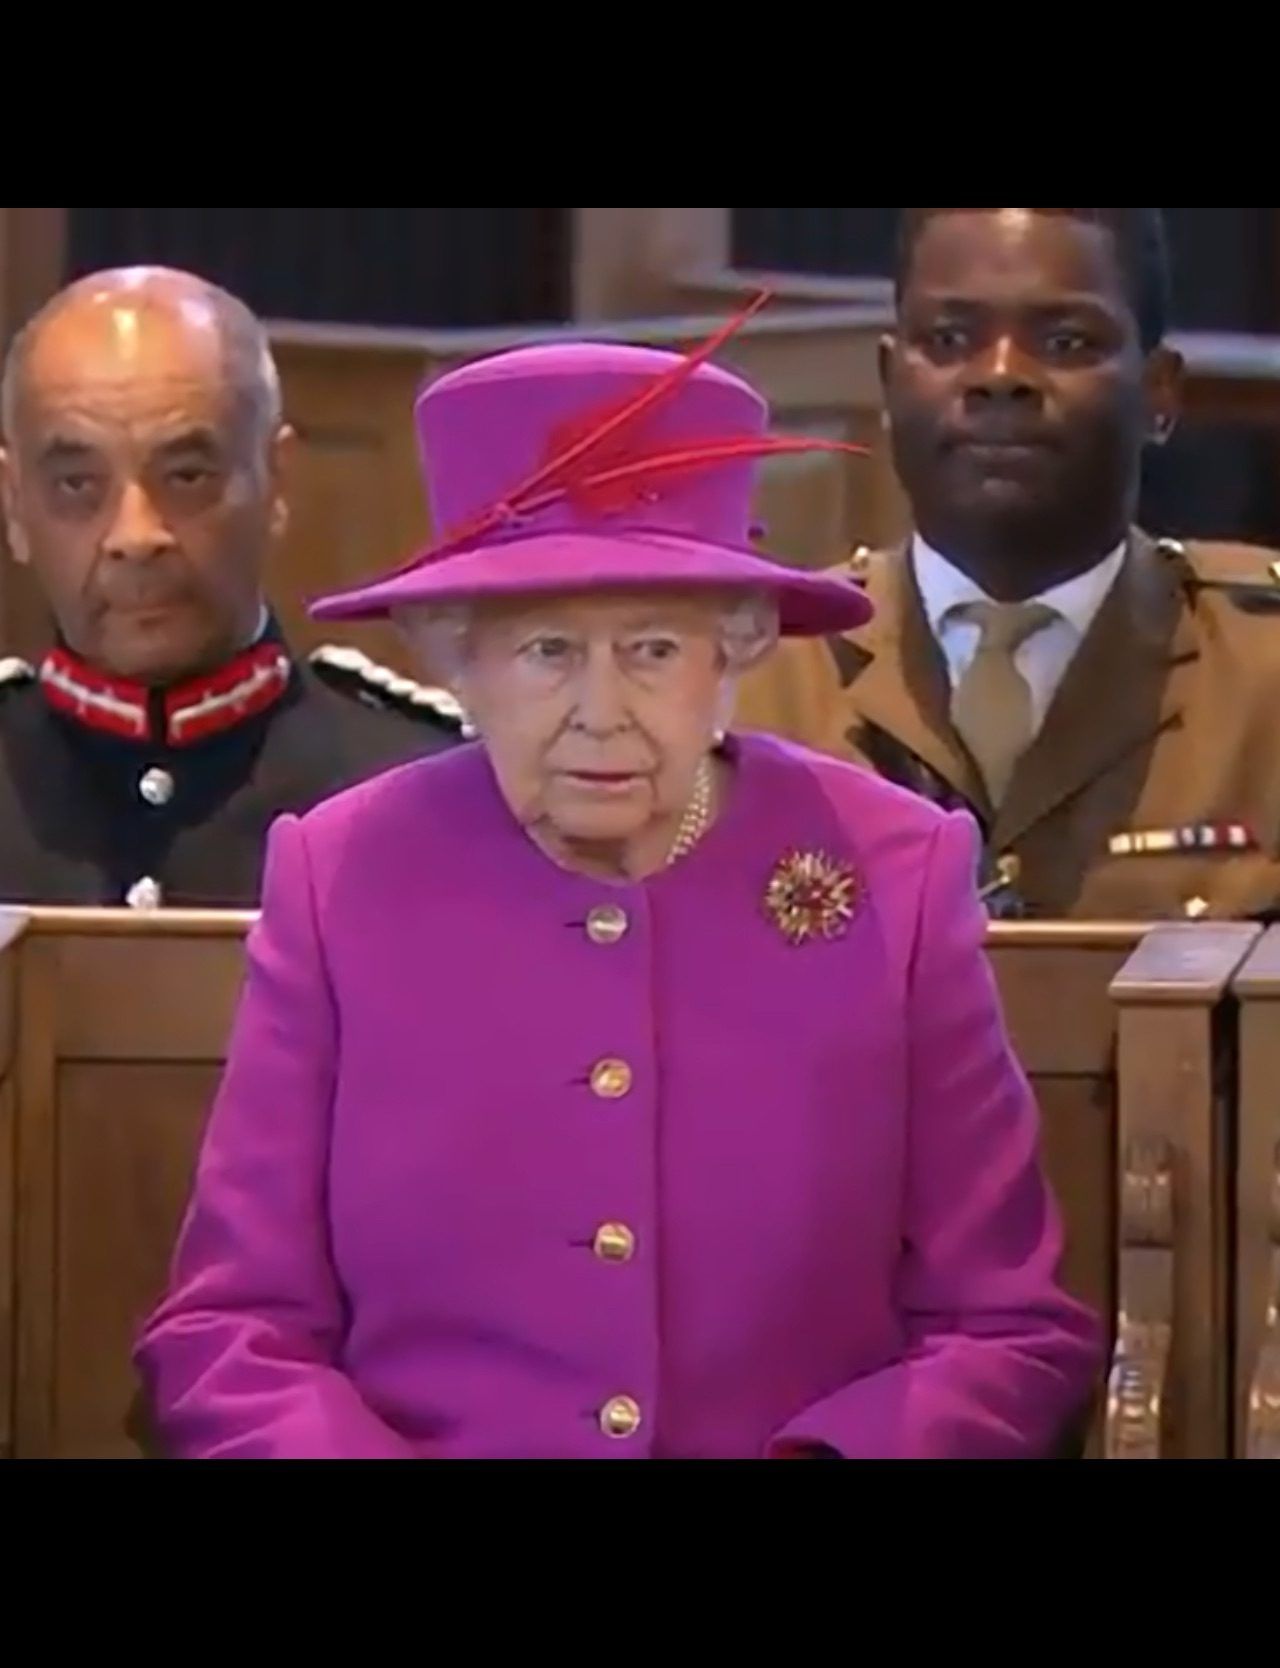 Her Majesty The Queen attends a Service at St Mary's Church